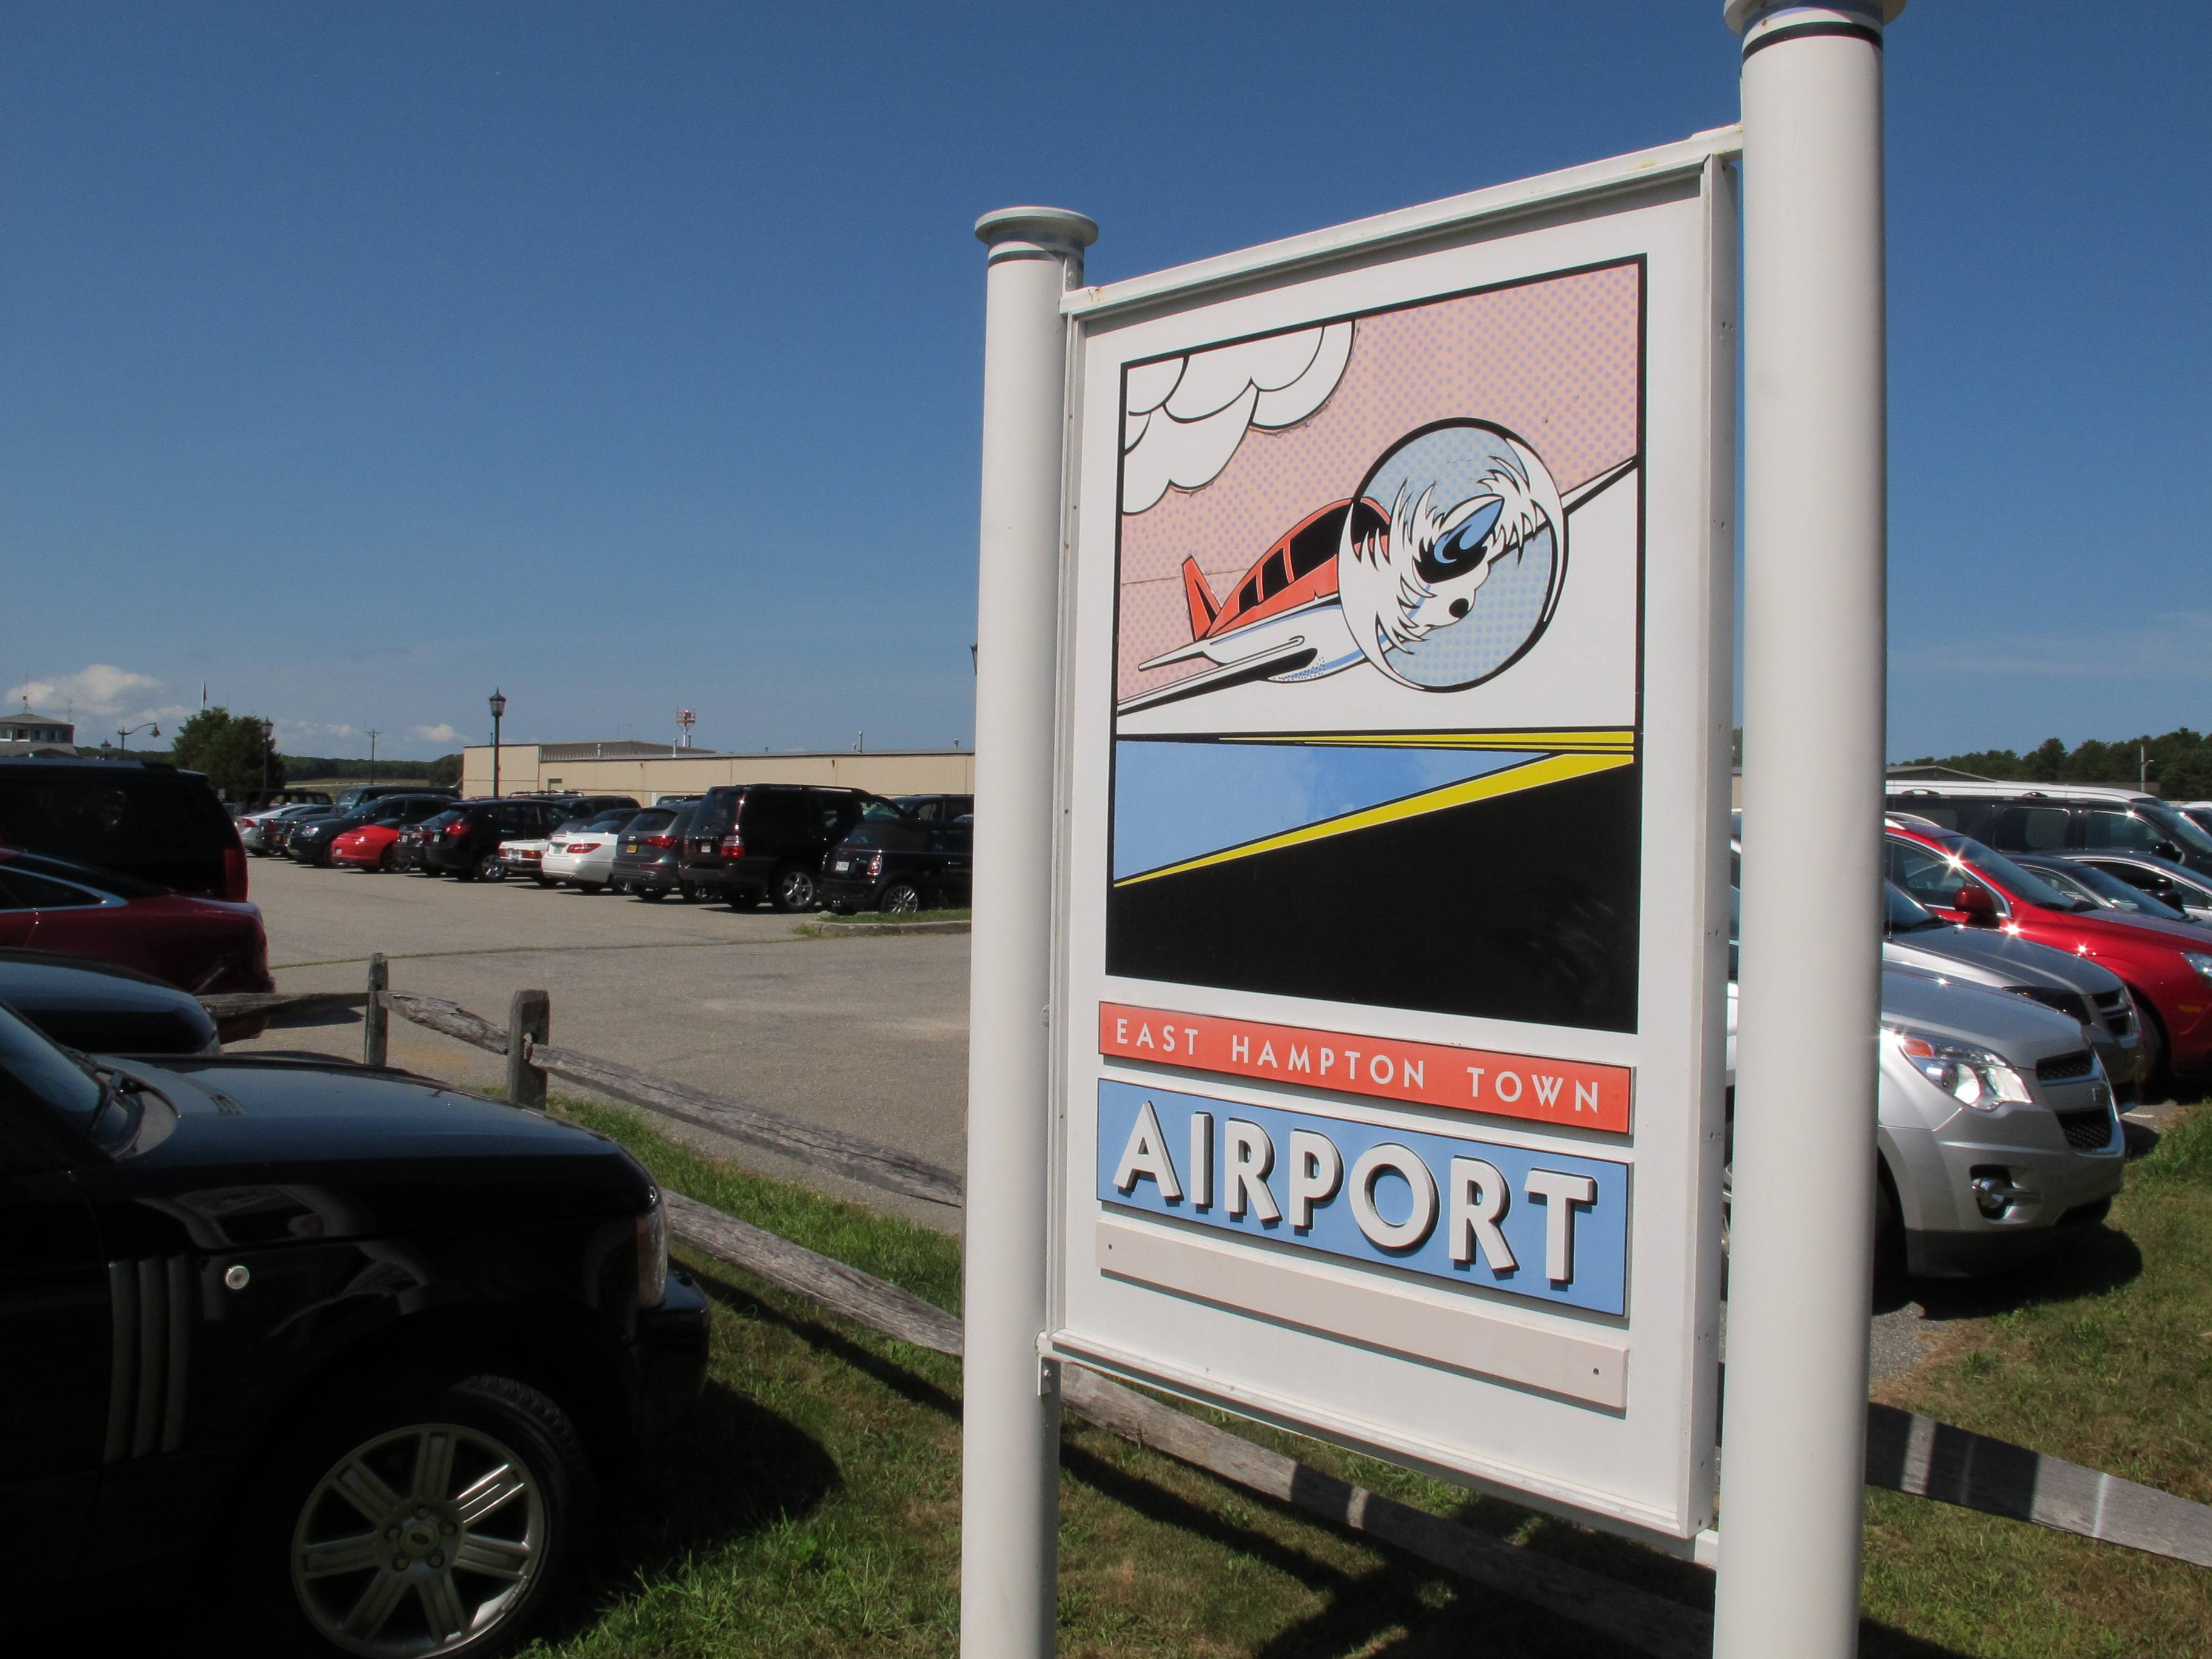 A sign welcomes visitors to the East Hampton Town Airport. Residents across eastern Long Island are complaining about the noise generated from jets, helicopters and other aircraft that land at the small municipal airport, which is situated in the heart of the summer playground for the rich and famous.